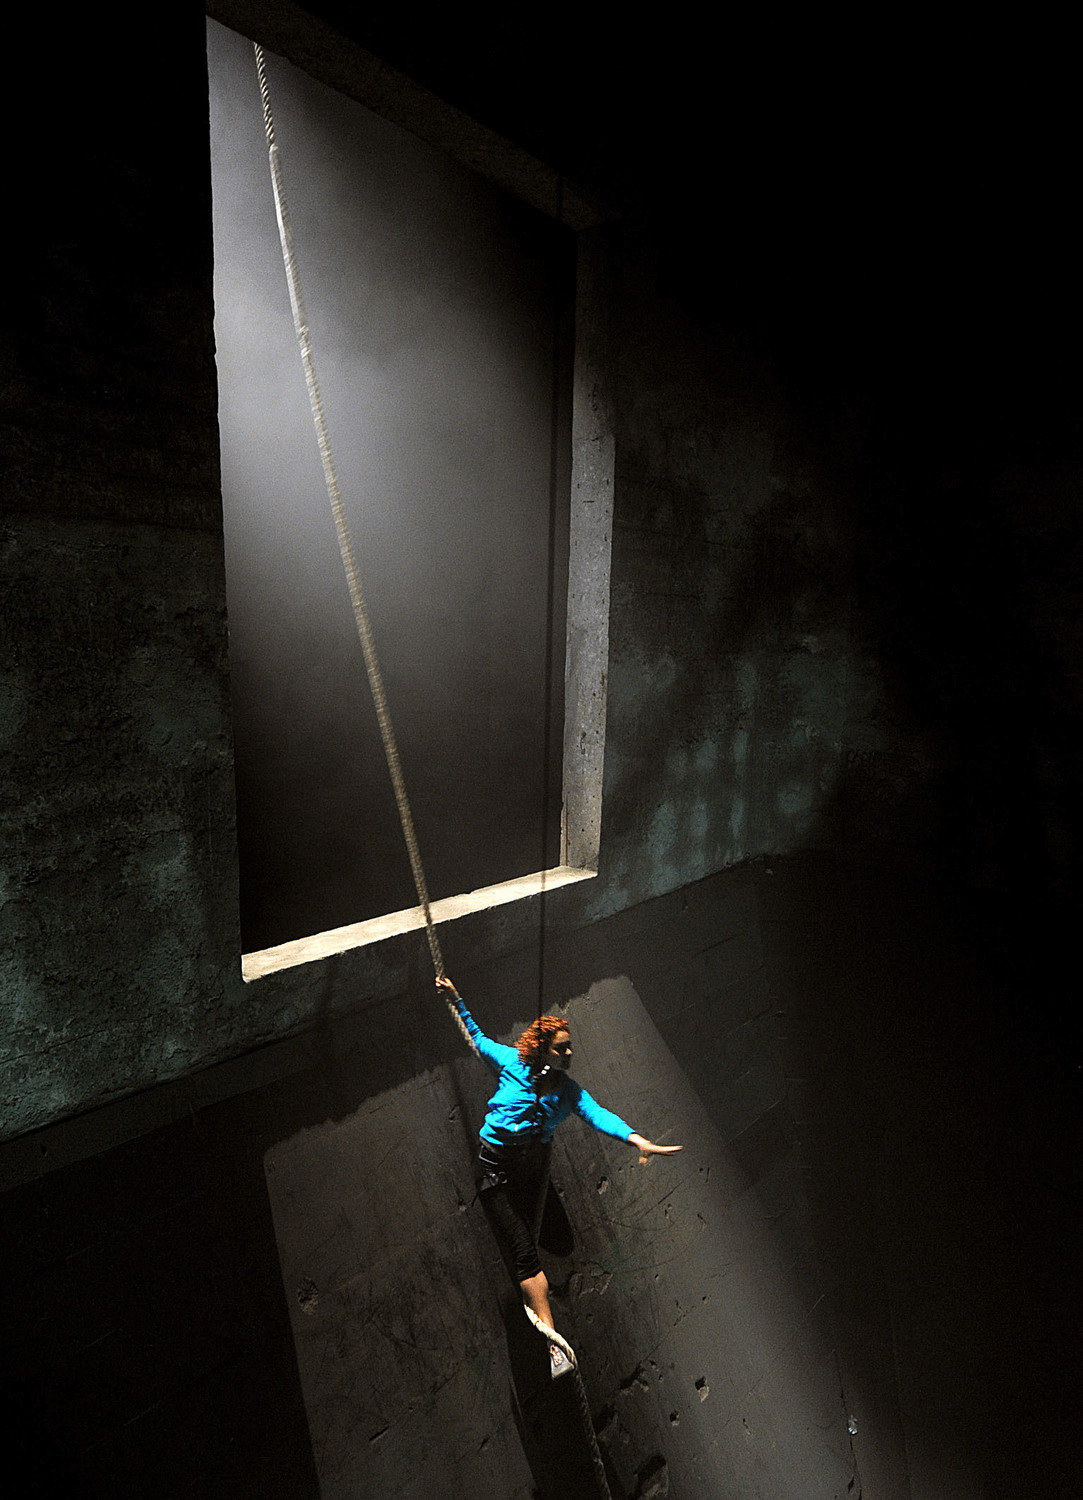 woman dangles from a rope in a hanging from the top of a long concrete shute, trying to find a way into paradise